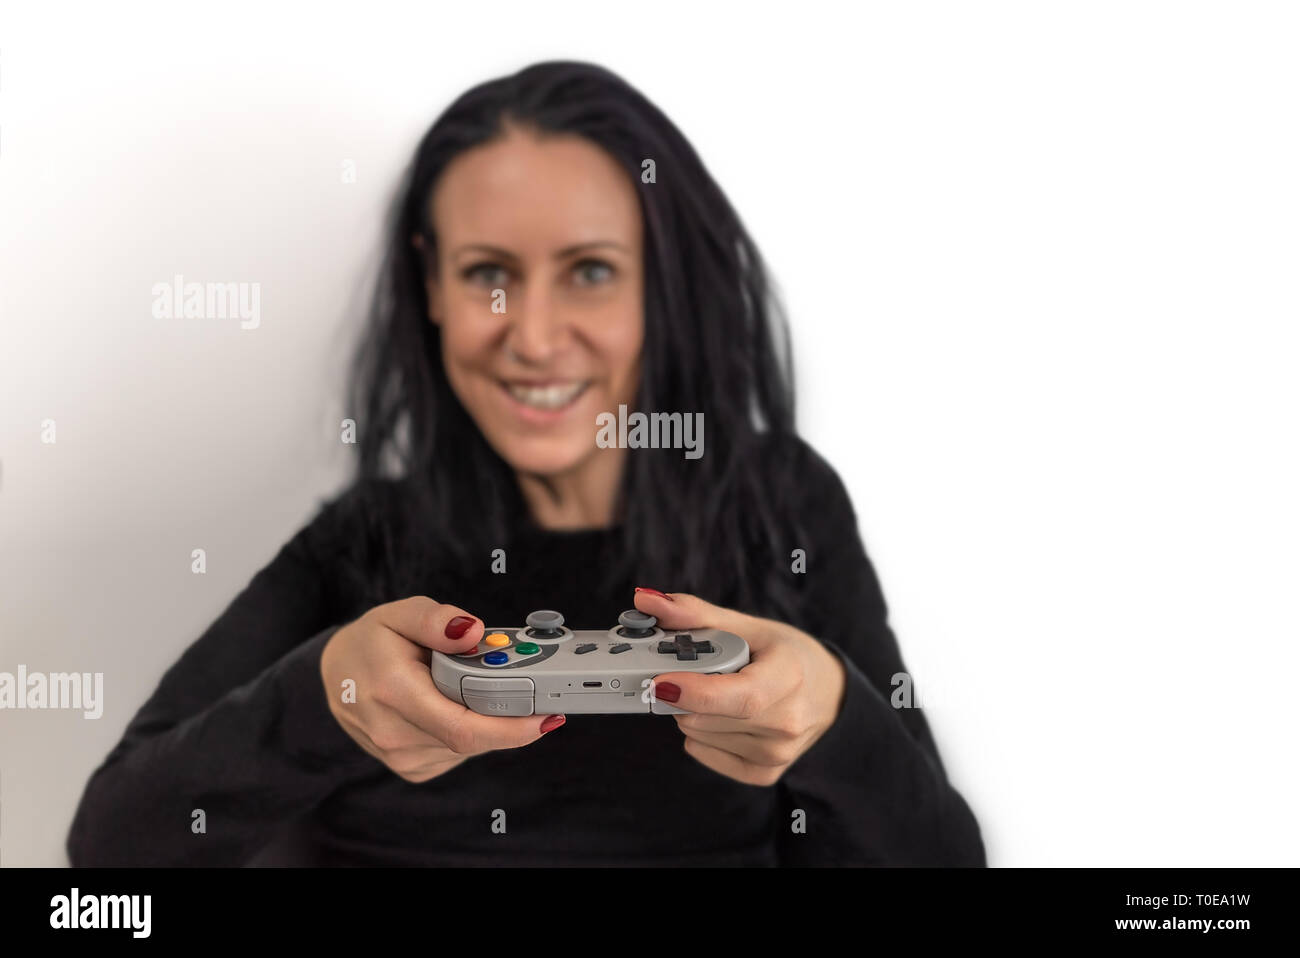 Young woman with red nail polish  playing video game on a retro wireless gaming controller with a happy and concentrated facial expressions Stock Photo